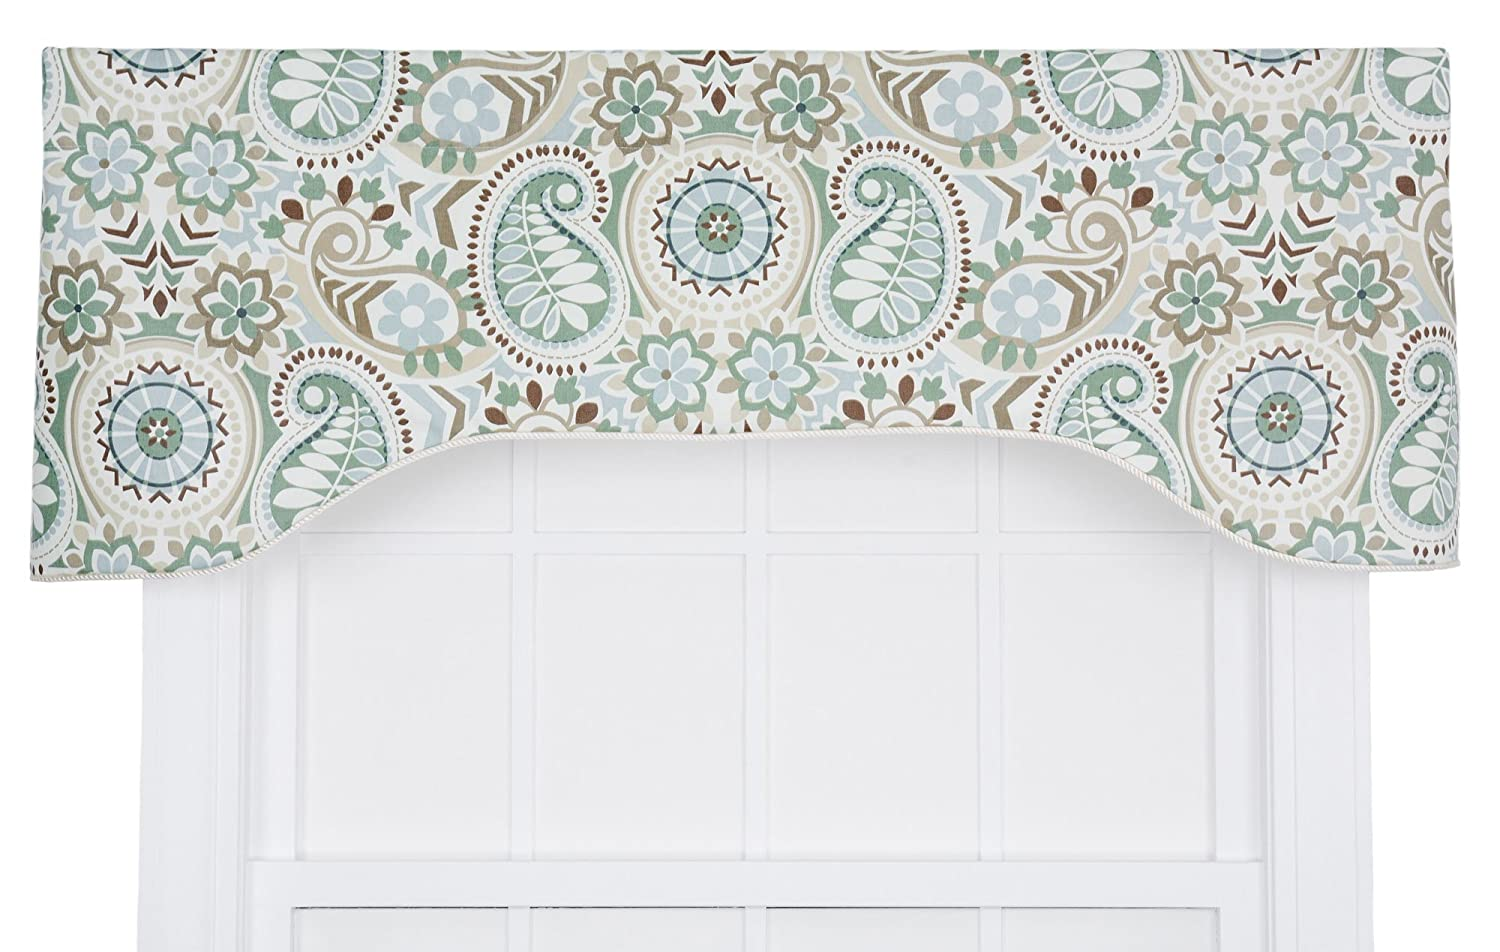 цена на Ellis Curtain Paisley Prism Jacobean Floral Print Lined Arched Valance, 50 by 17-Inch, Latte